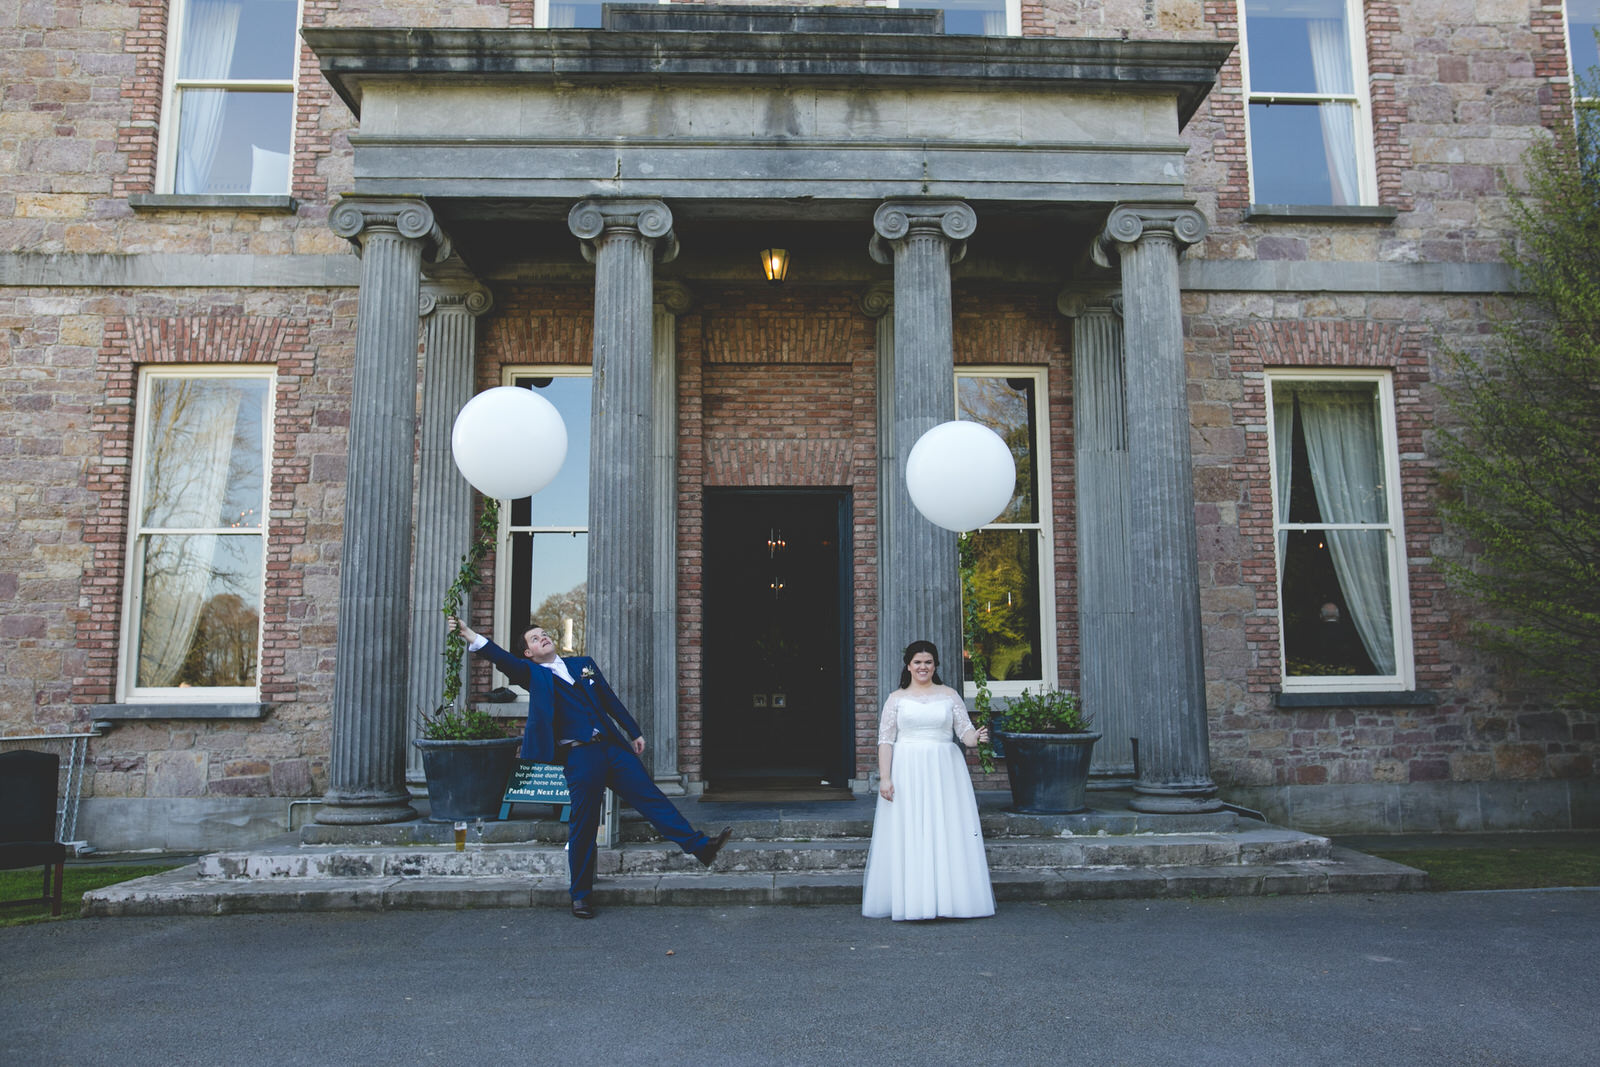 Giant balloons at wedding in Kilshane House